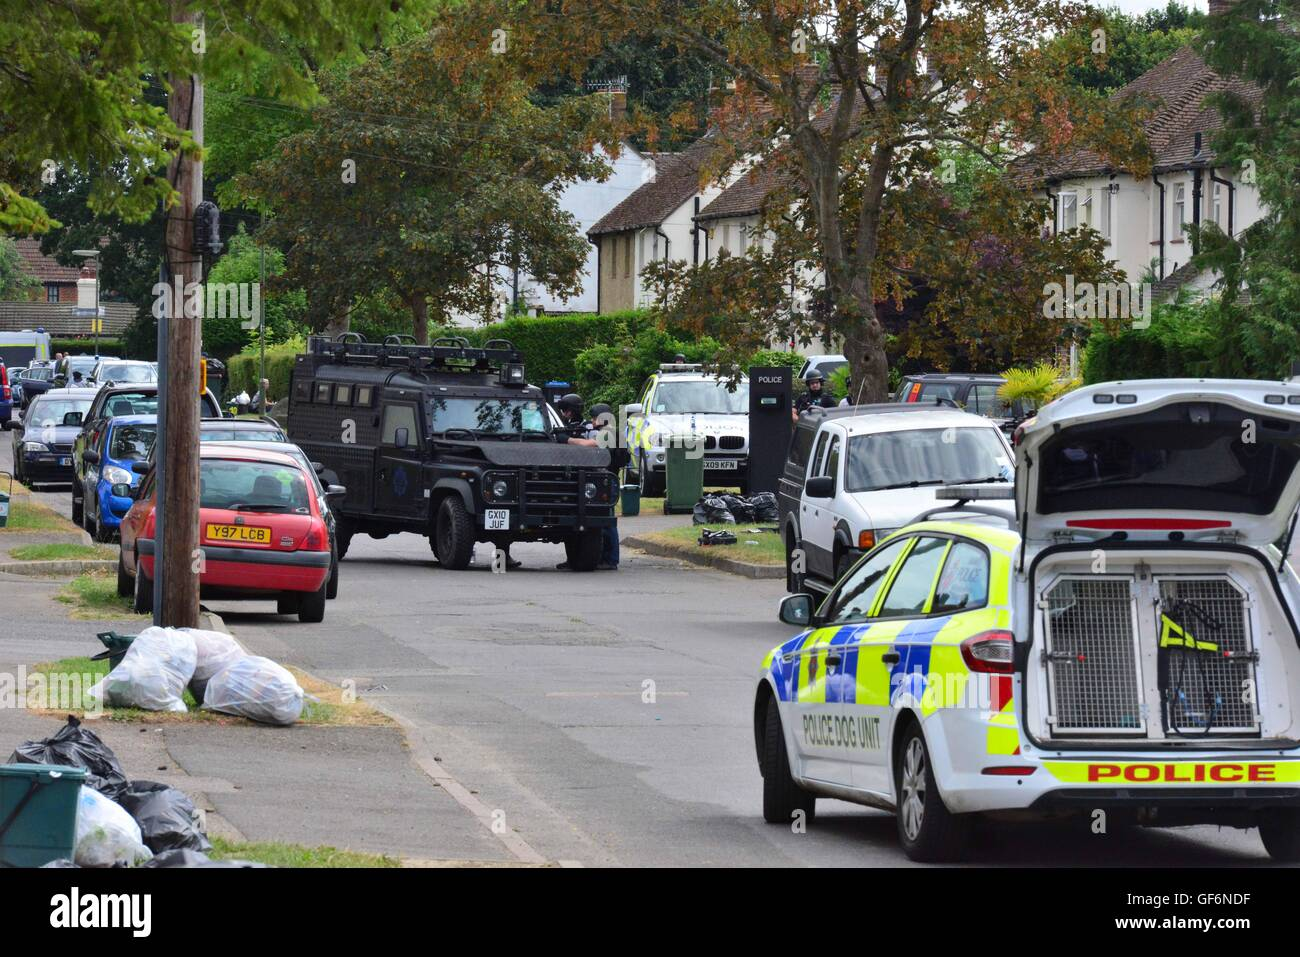 English Police Stake out in Surrey - Stock Image